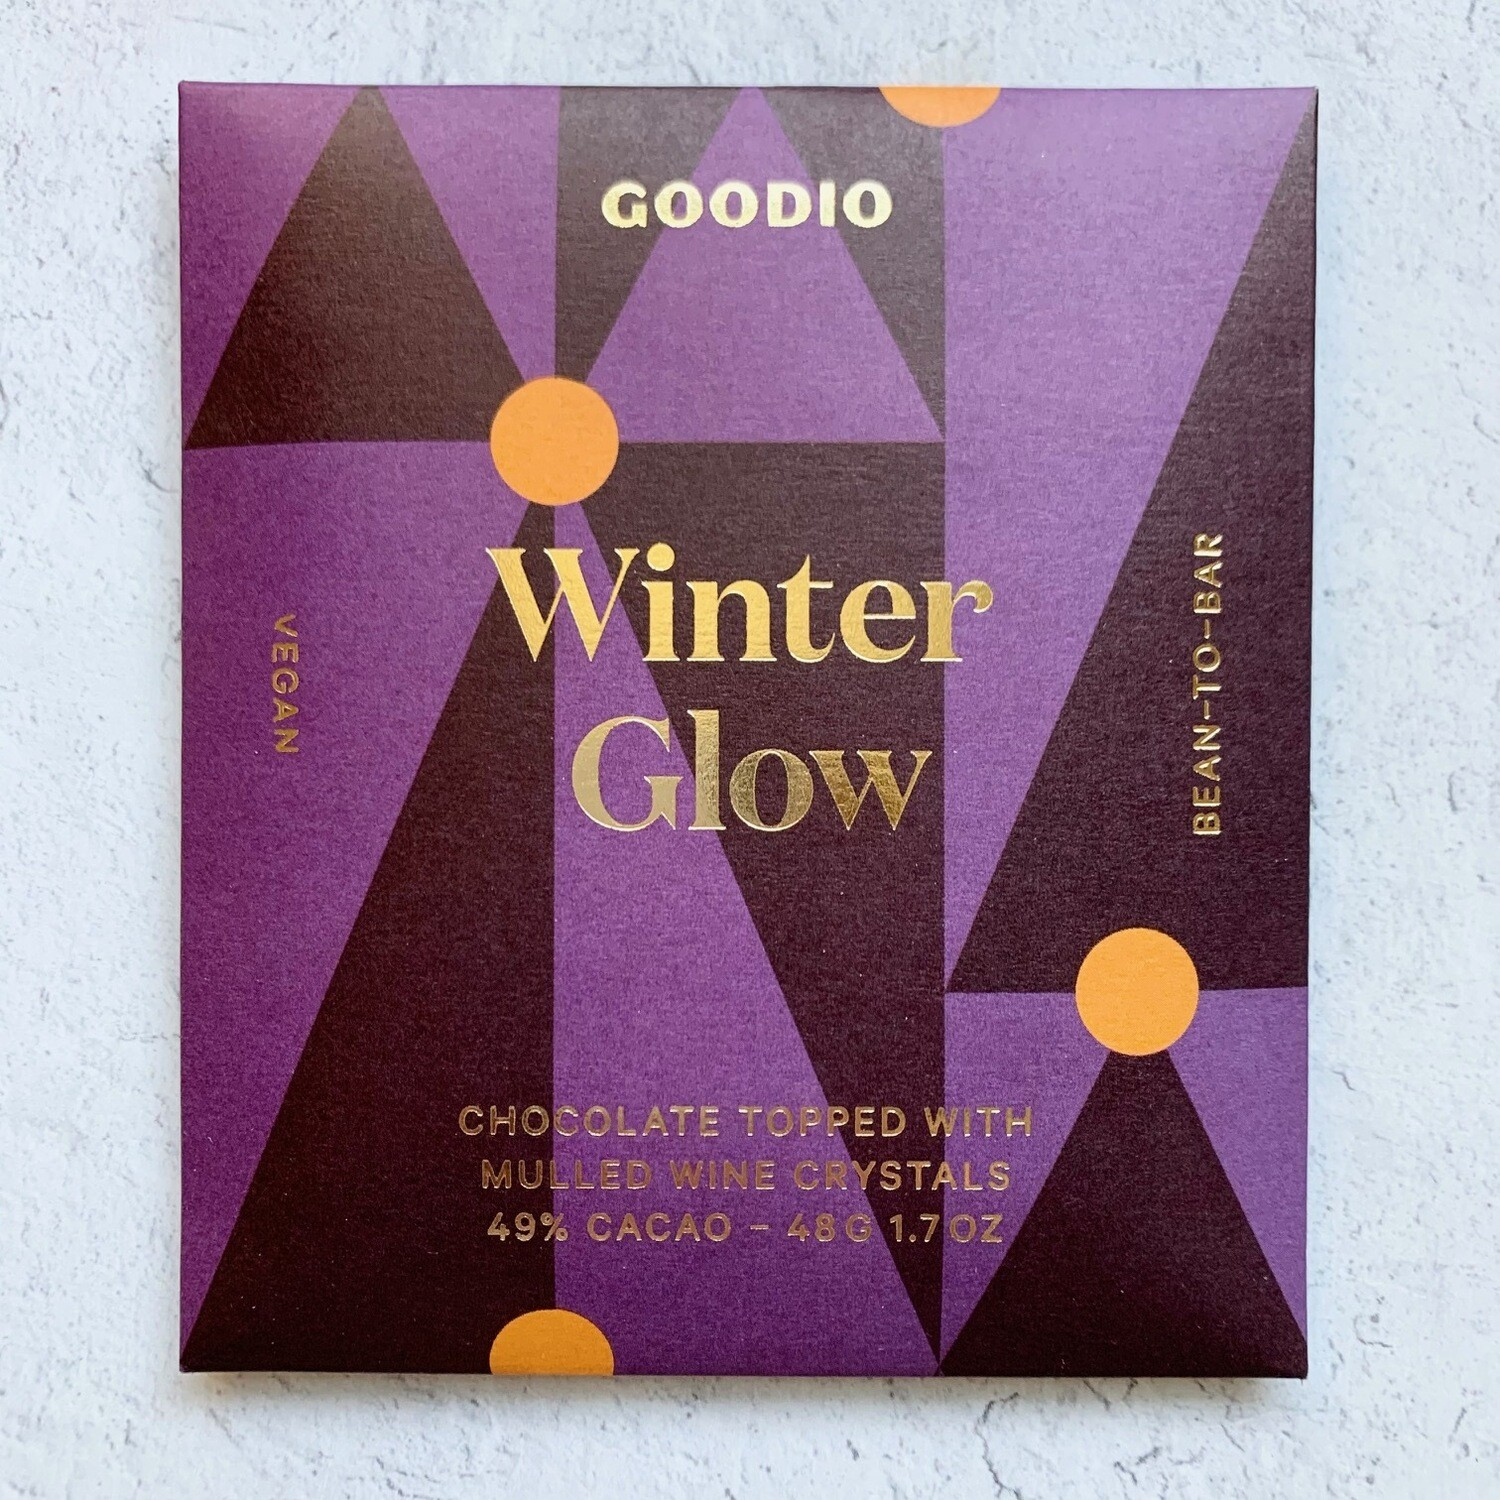 Goodio Winter Glow